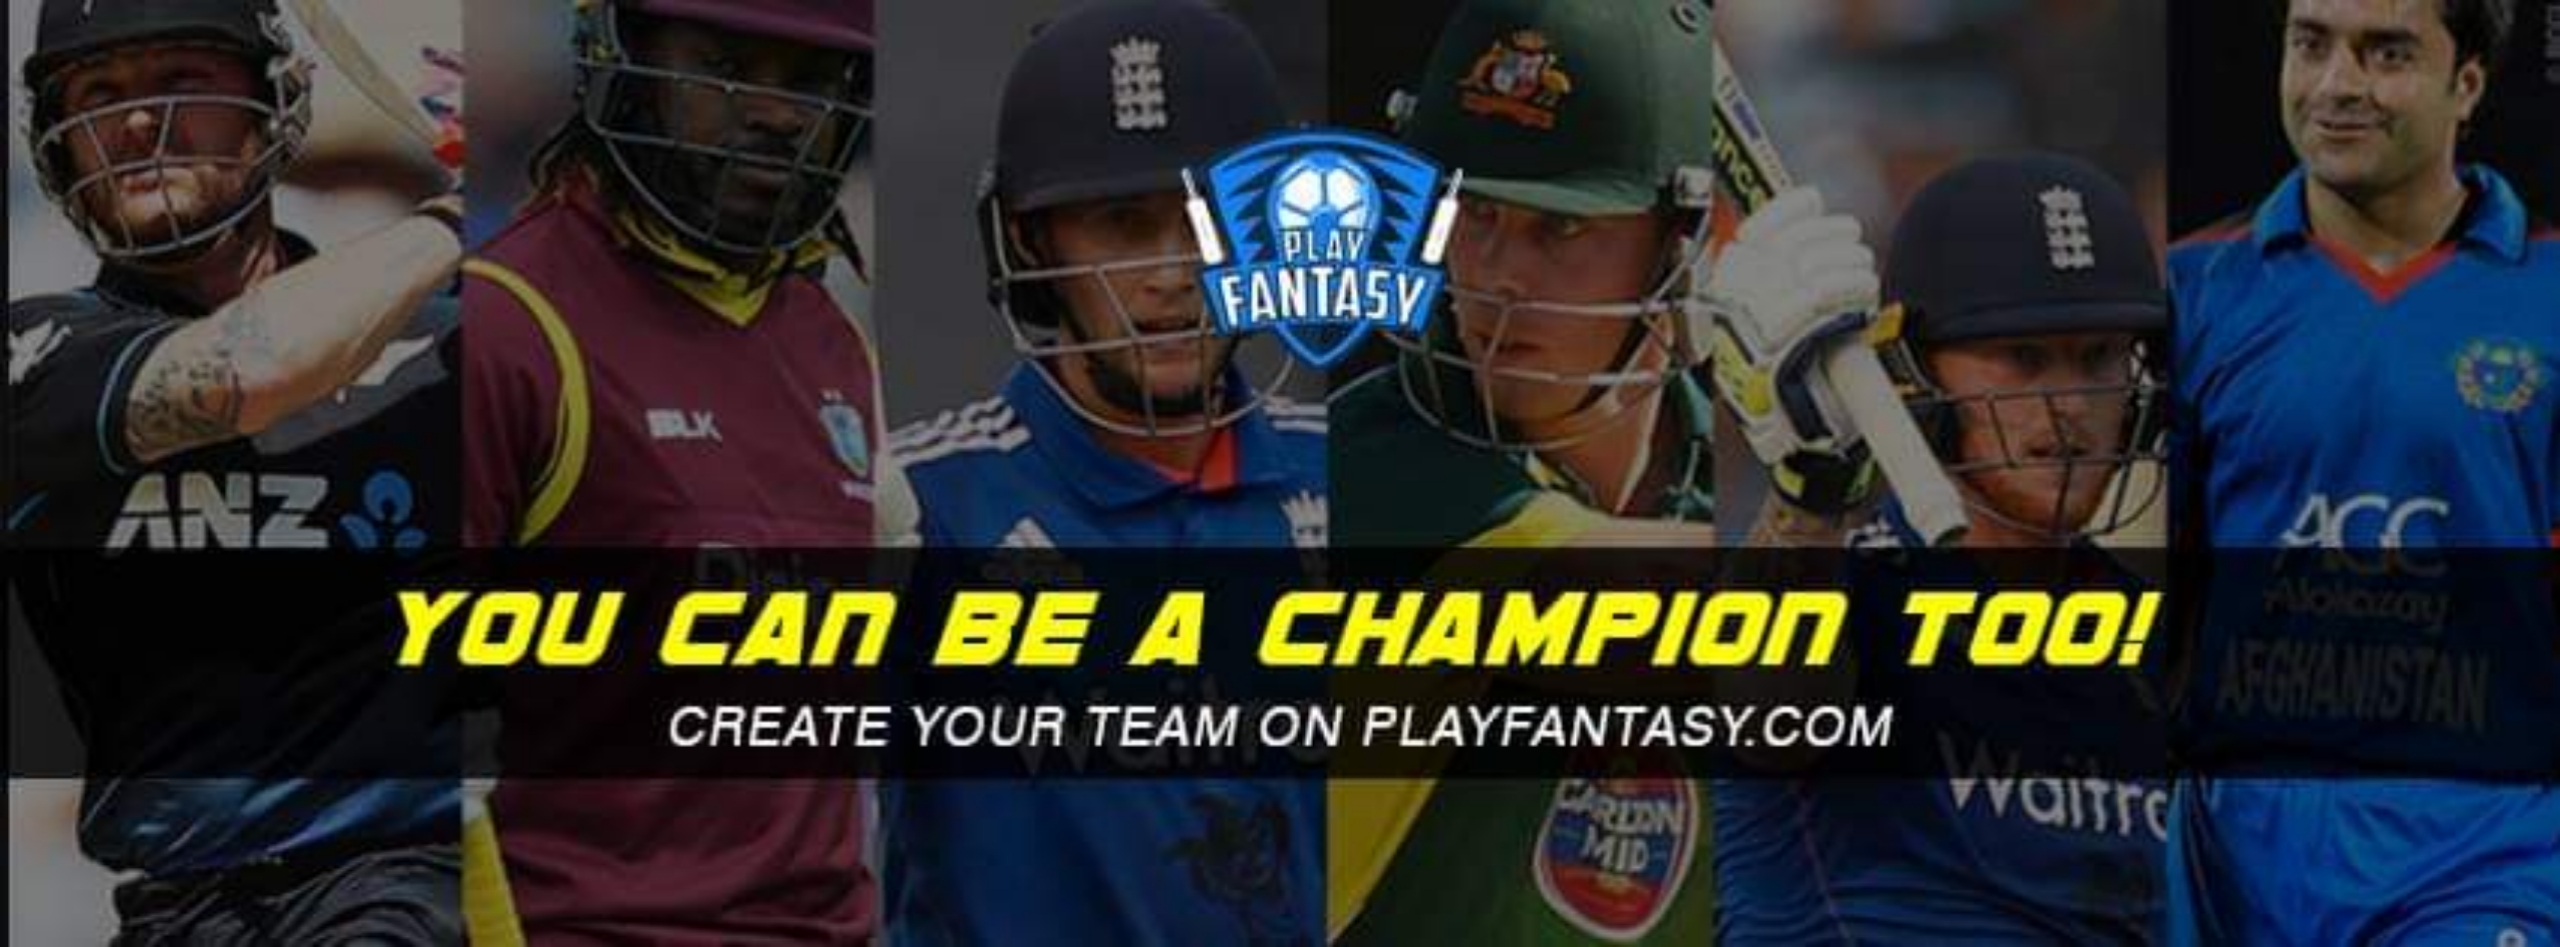 It's a fantasy gaming platform featuring Cricket, Football and Kabaddi. It helps players with basic and advanced sports skills to participate in gaming events/matches and earn real cash utilising their skills. Every event or game has a defined cash prize, and that gets credited to the accounts of winning players.